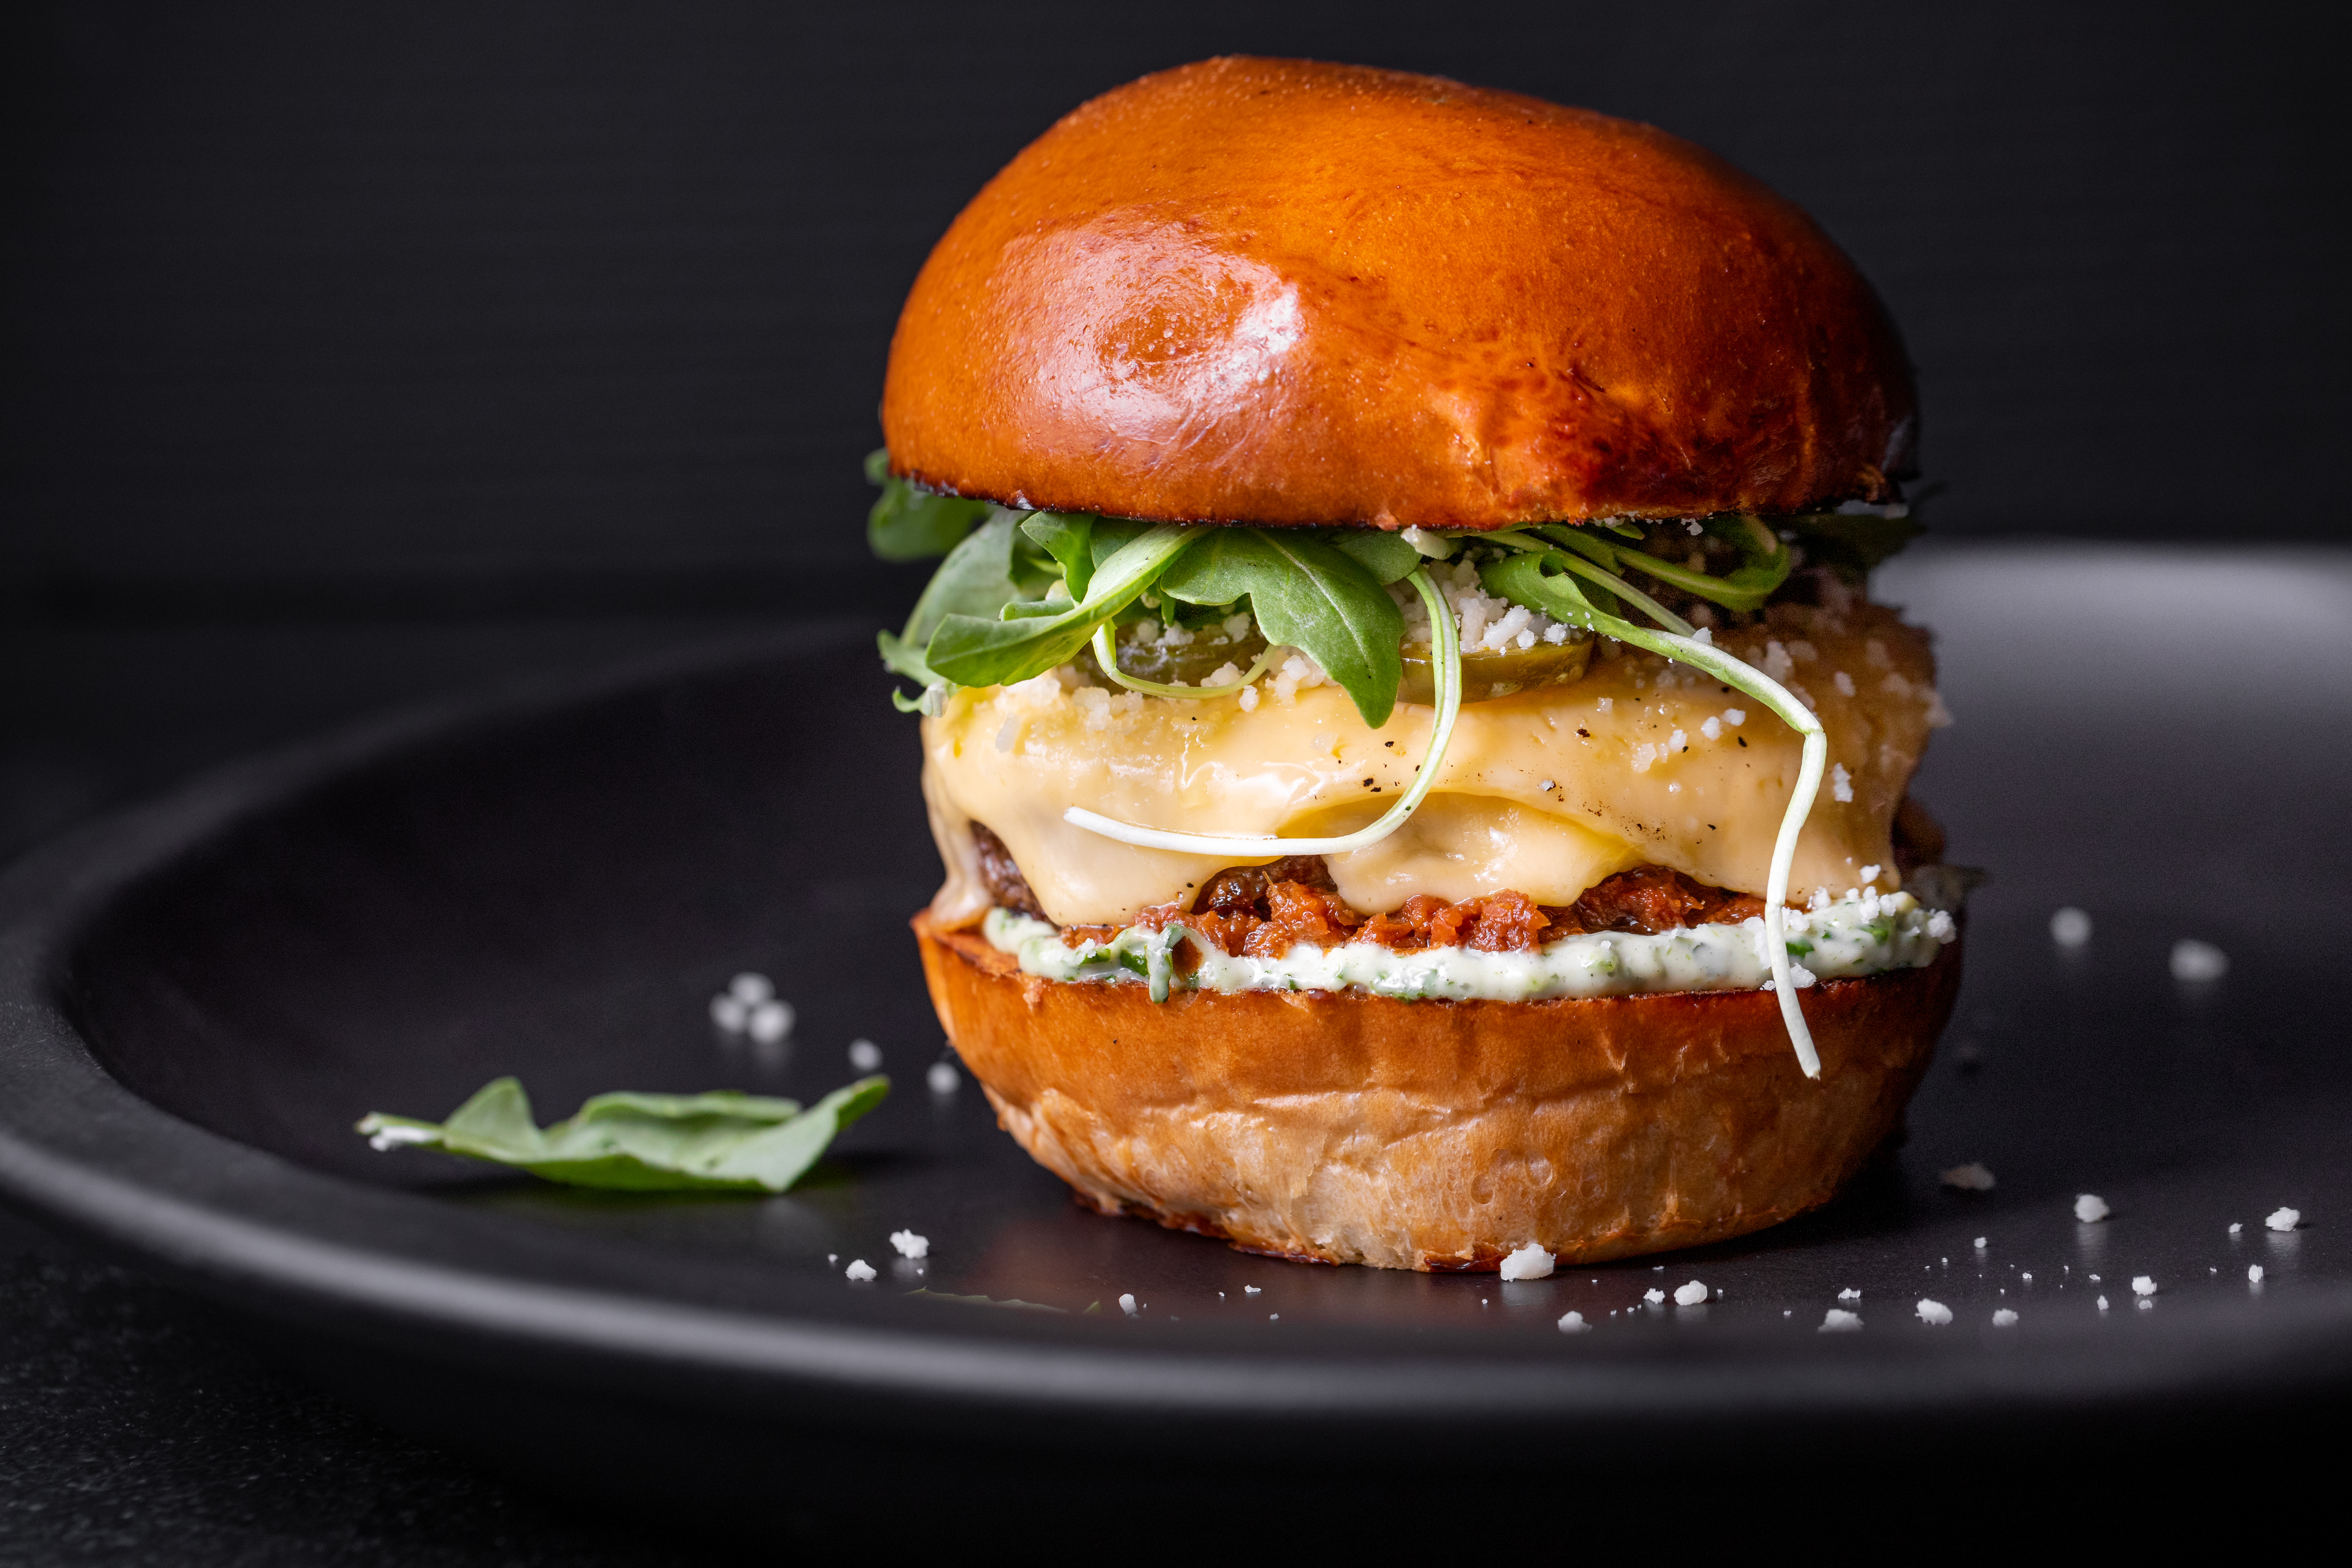 A tall burger on a golden brioche bun with lots of cheese and arugula.